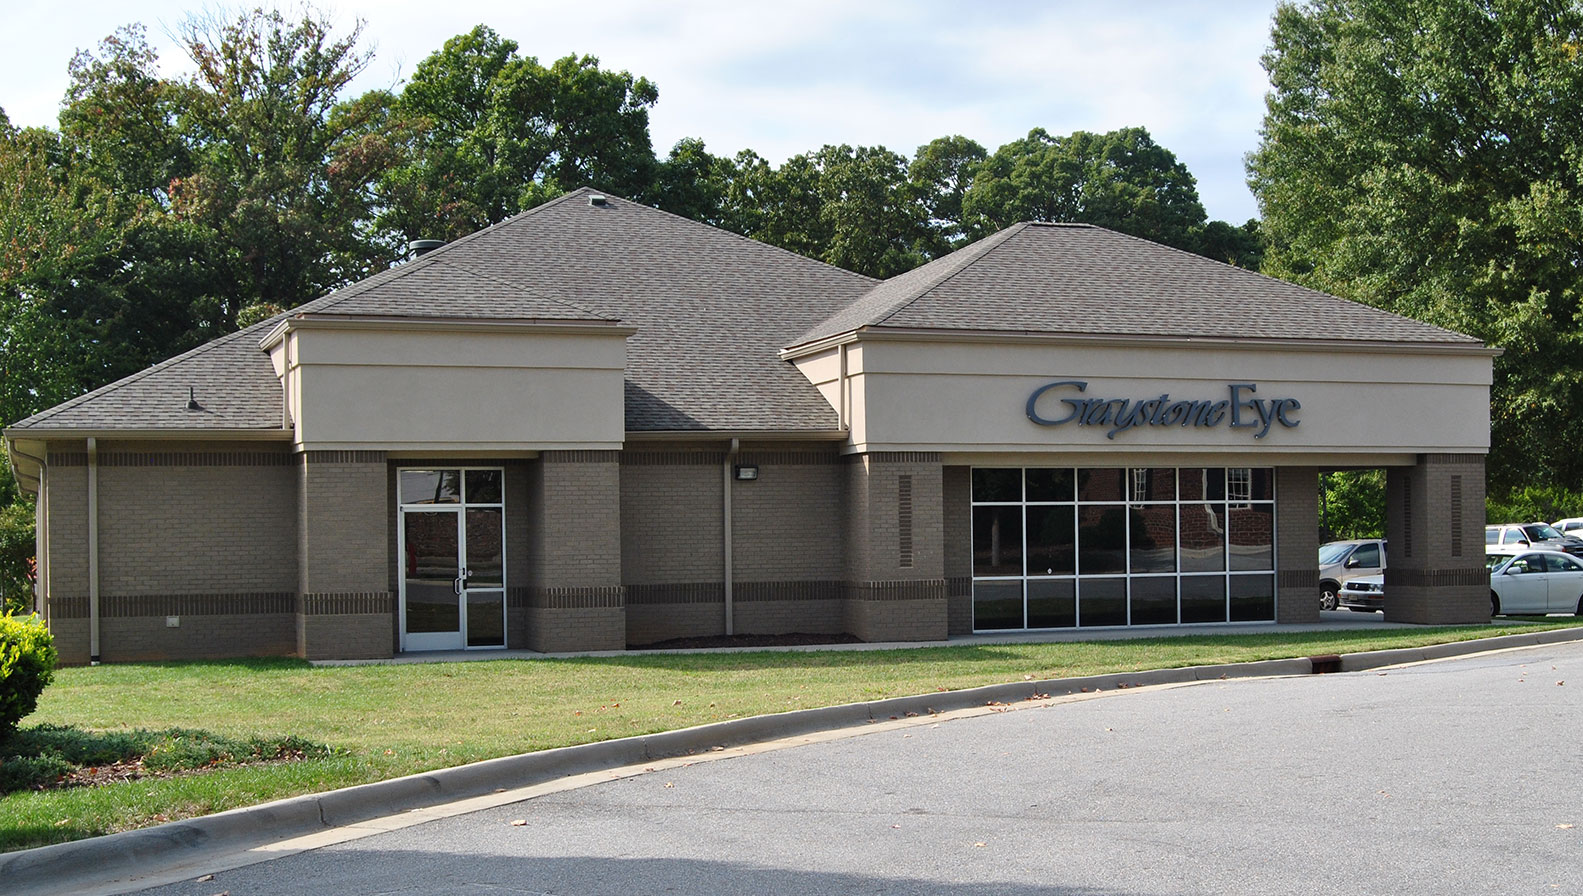 Graystone Eye Lincolnton Office